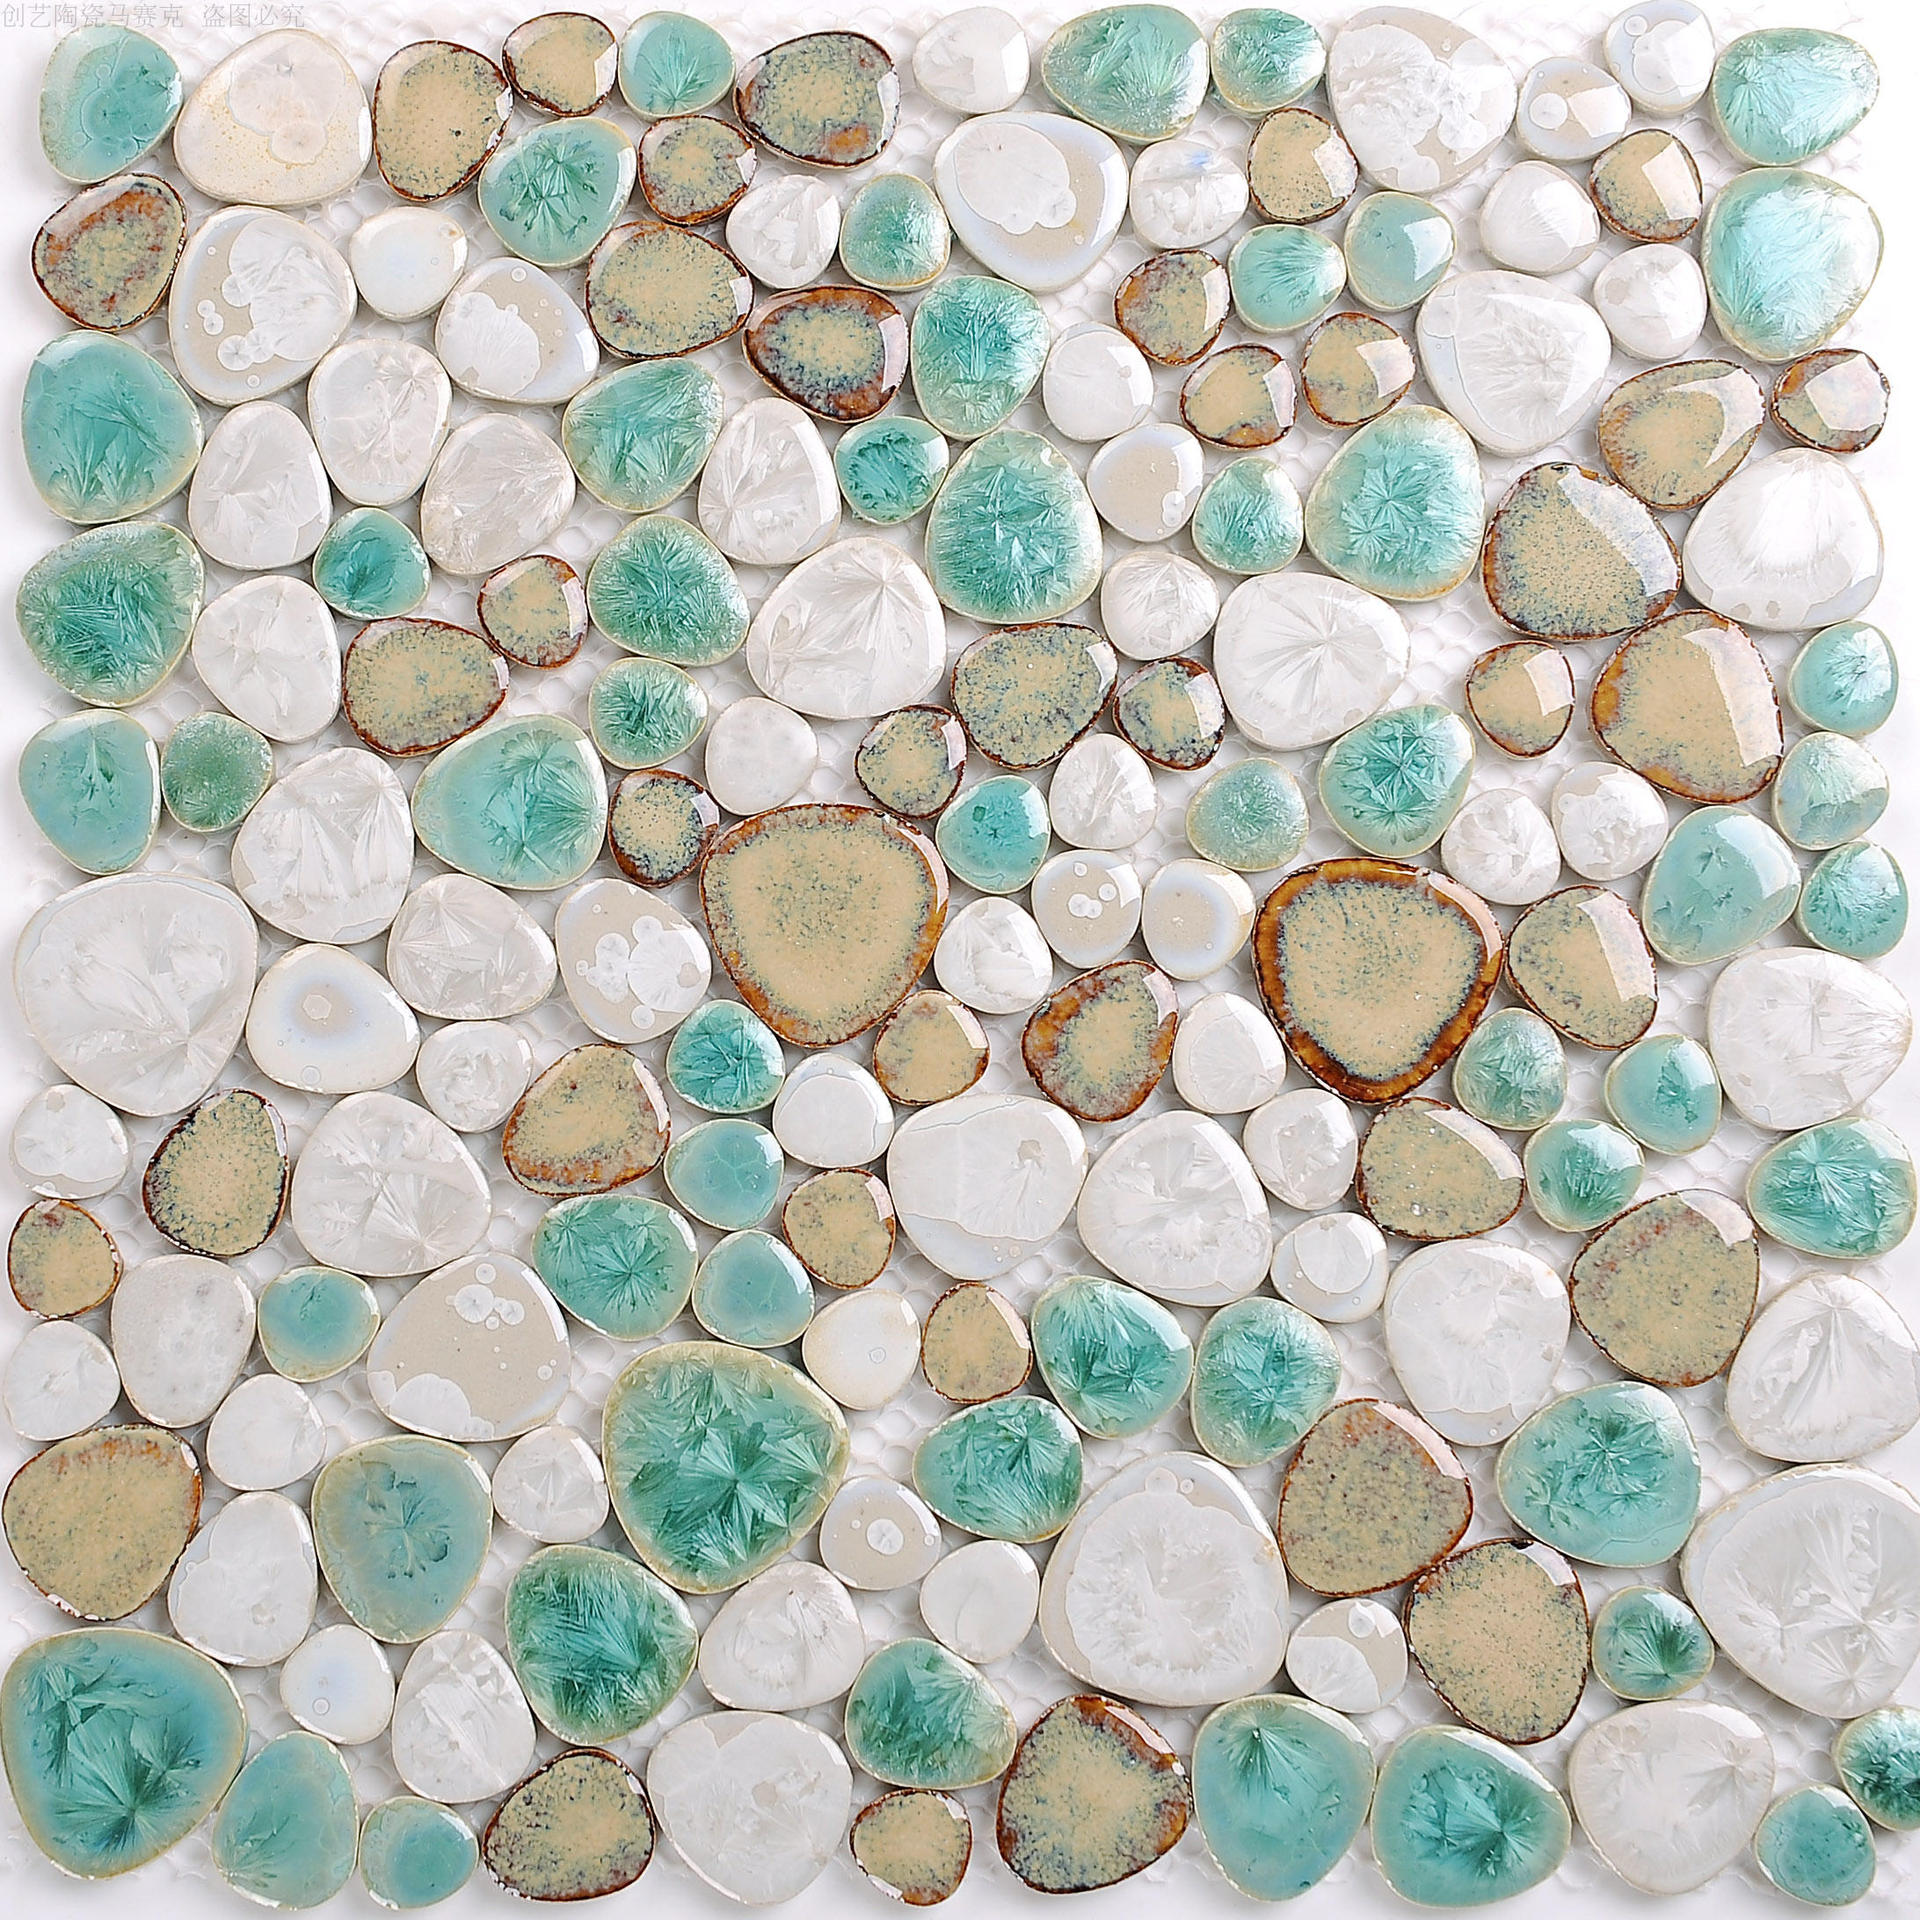 Ceramic Fish Pond Pebble Mosaic Tile Anti-slip Resistant Tiles Bathroom Outdoor Pool Hot Spring Pool